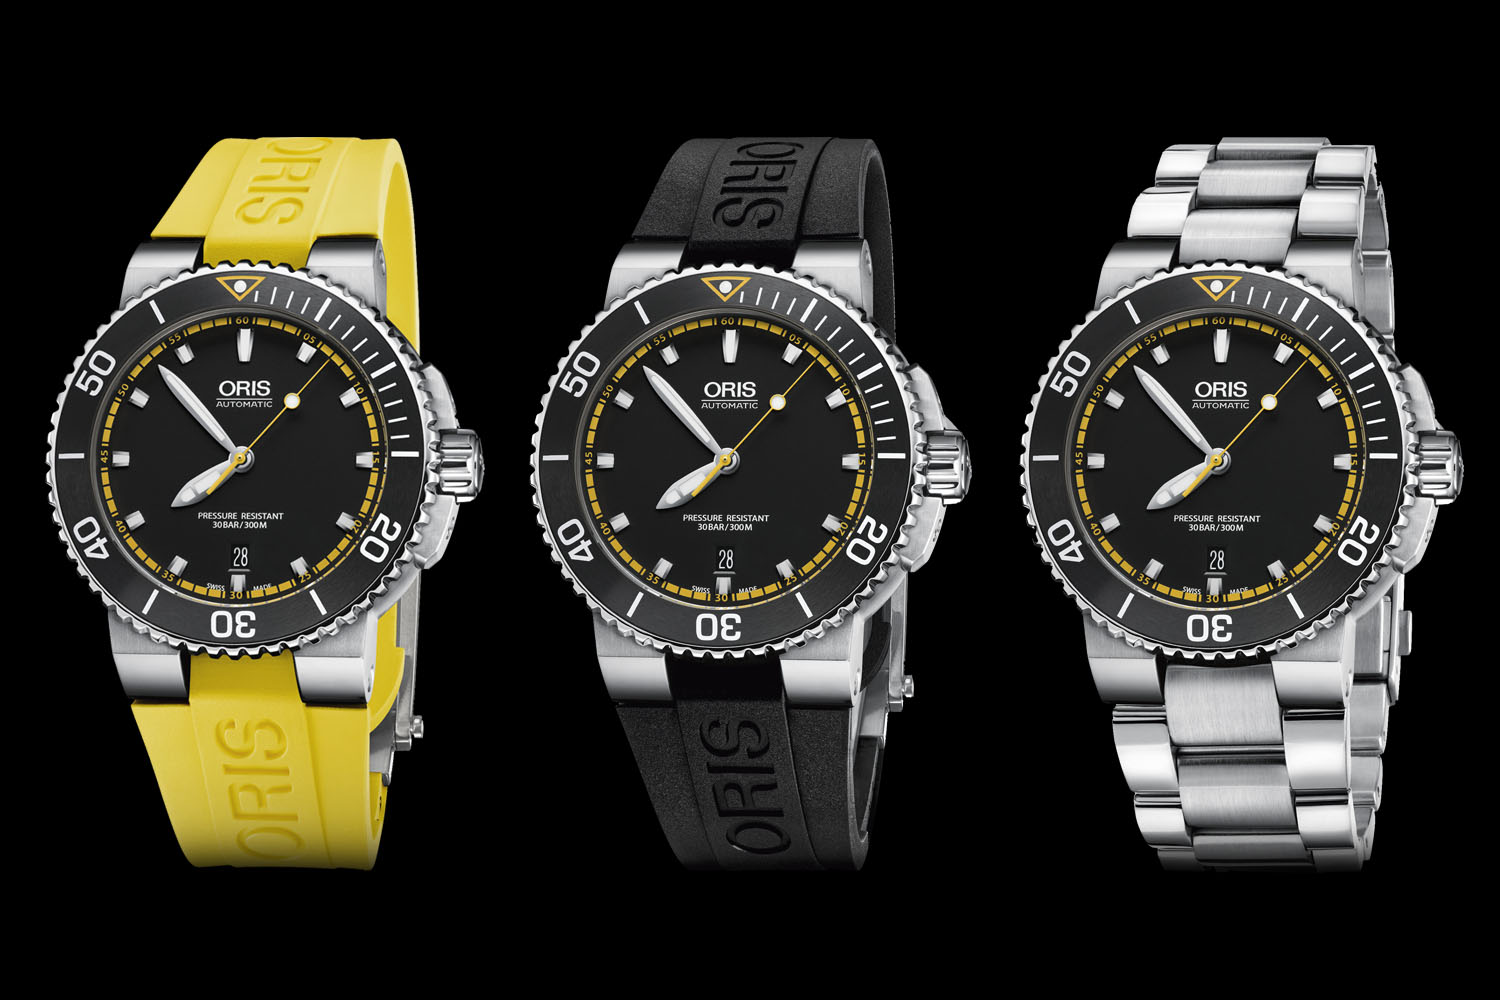 Oris Aquis Date Watch Collection Now More Colourful